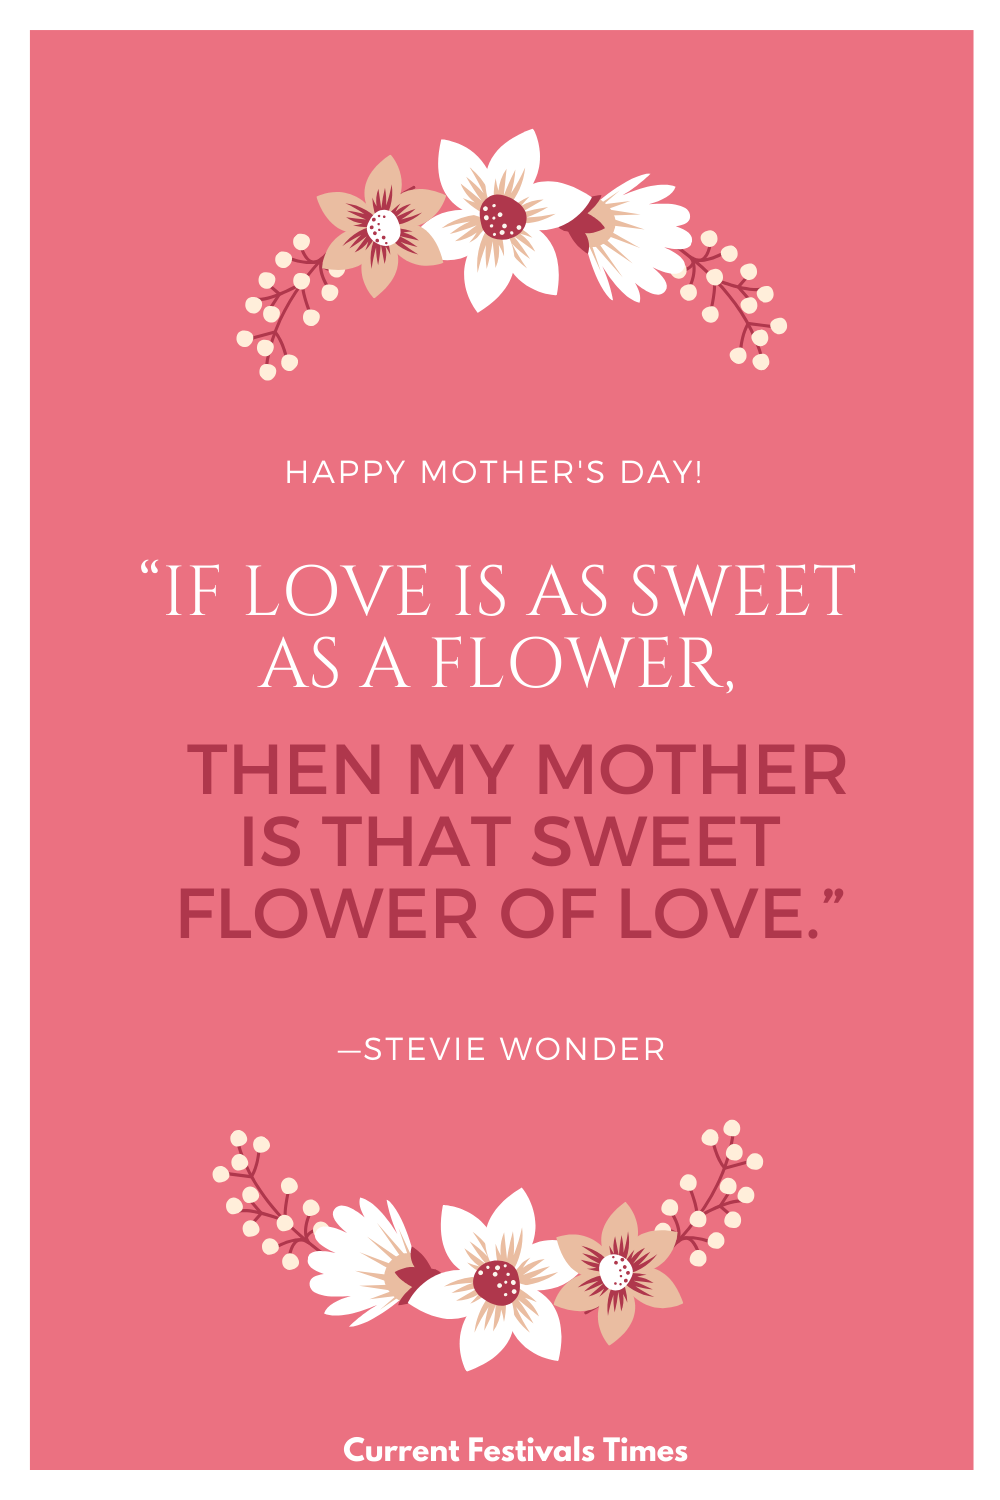 mother's day quotes 2020